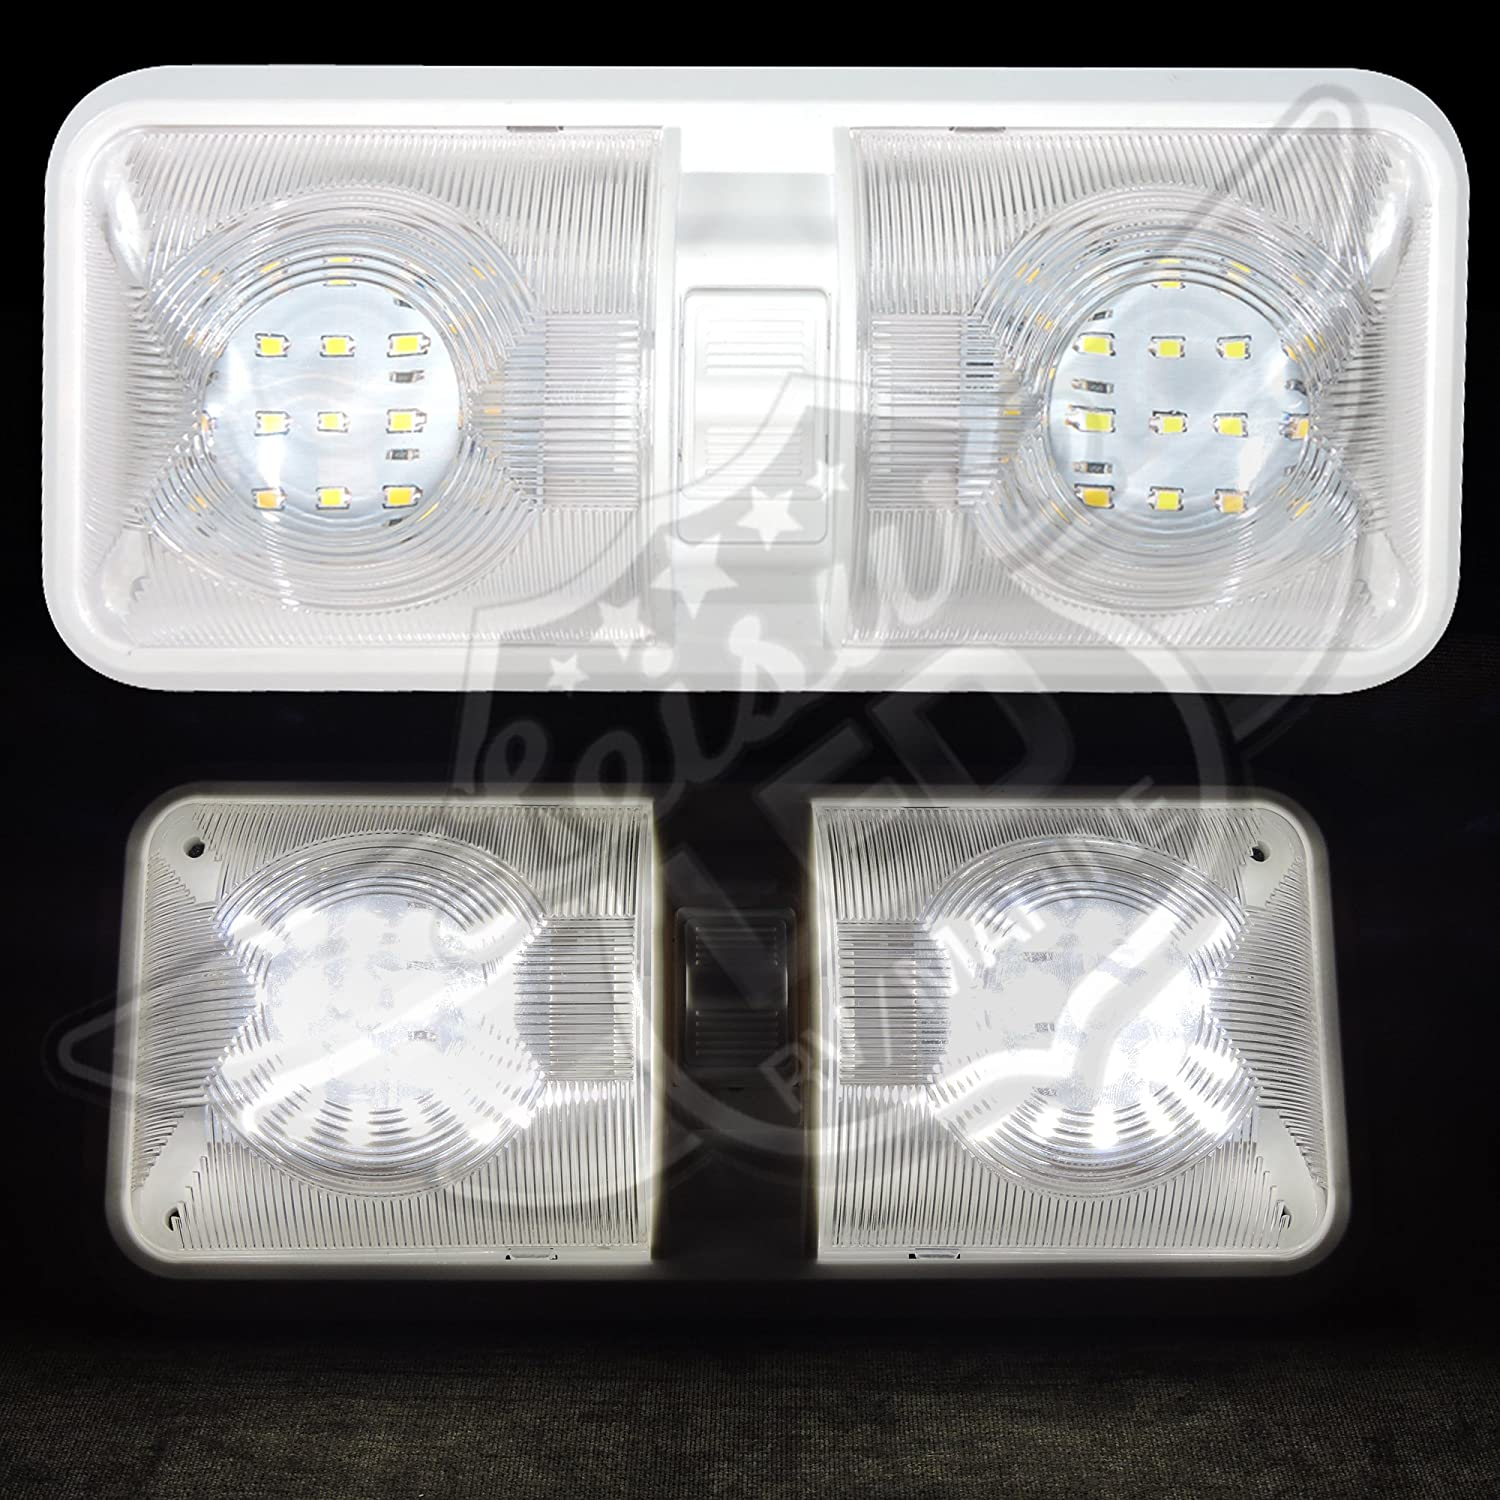 Leisure LED 2 Pack RV LED Ceiling Double Dome Light Fixture with ON//Off Switch Interior Lighting for Car//RV//Trailer//Camper//Boat DC 11-18V Natural White Natural White 4000-4500K, 2-Pack